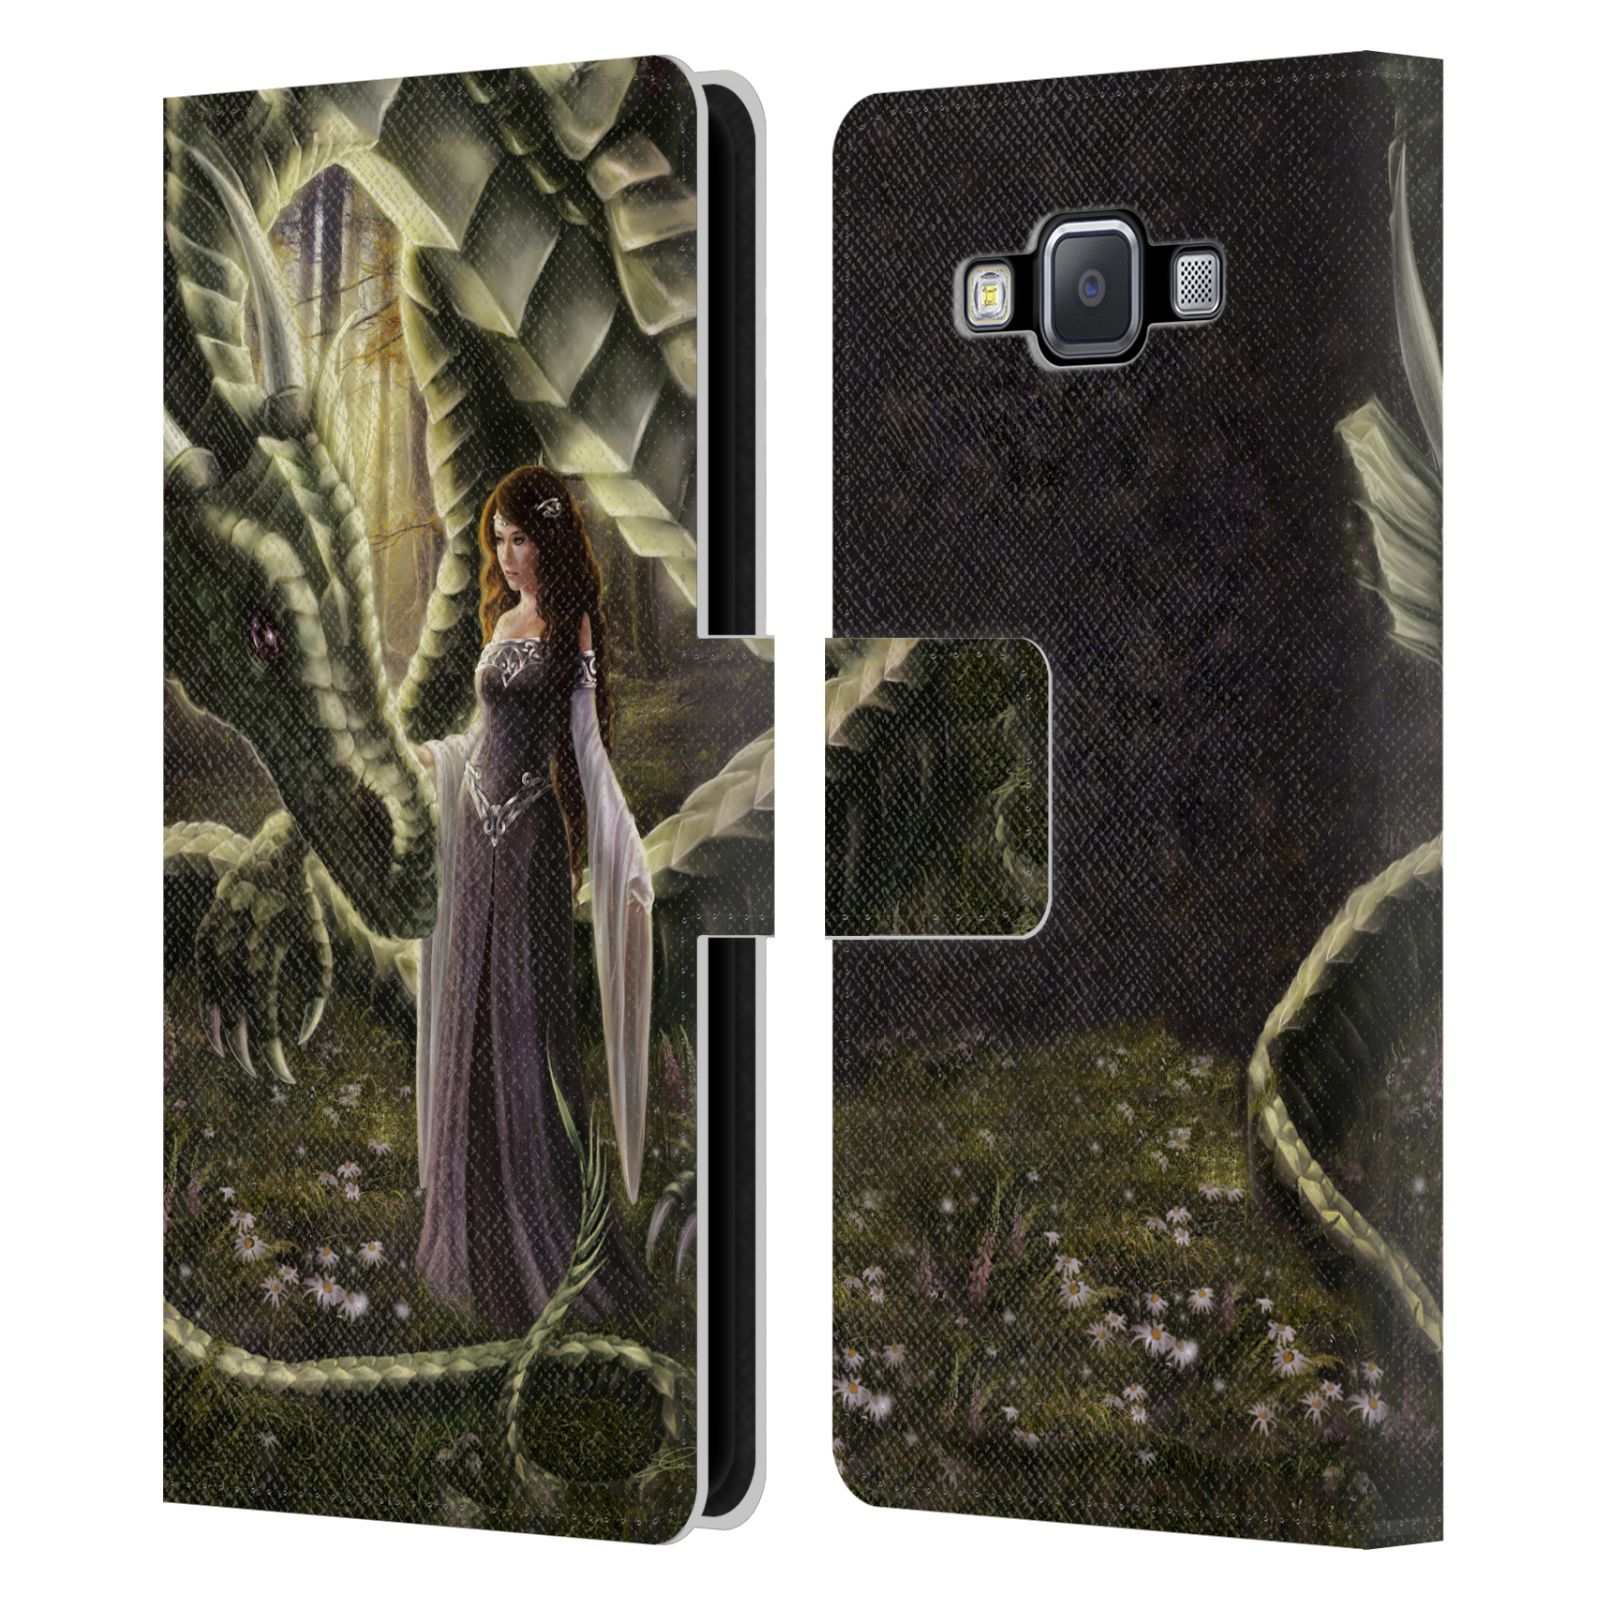 OFFICIAL-SELINA-FENECH-DRAGONS-2-LEATHER-BOOK-WALLET-CASE-FOR-SAMSUNG-PHONES-2